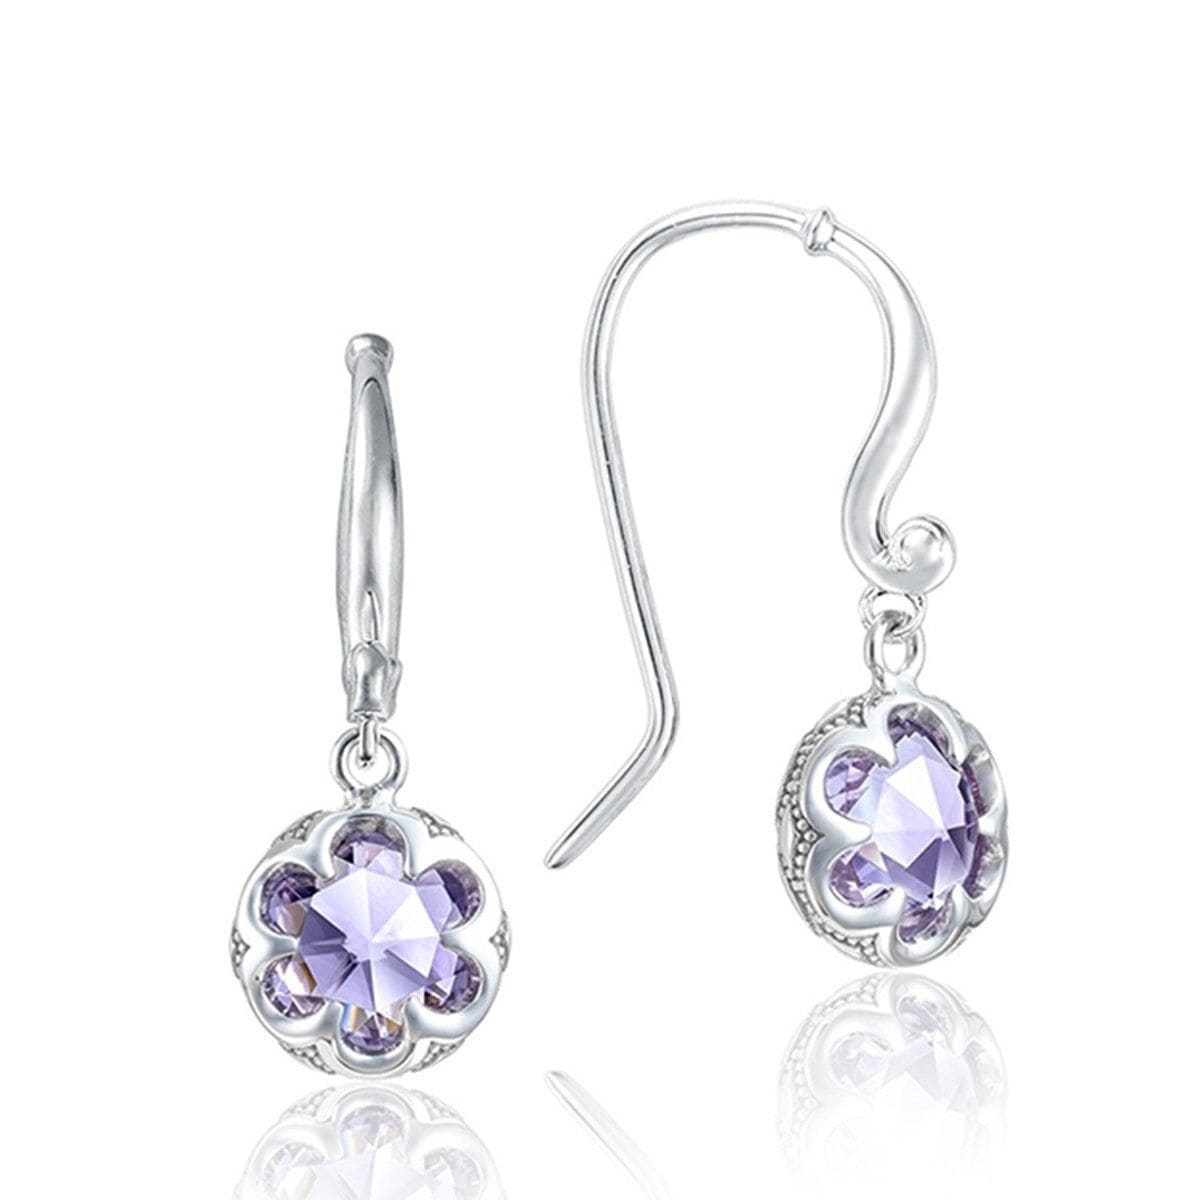 Silver Round Amethyst French Wire Earrings - SE21101-Tacori-Renee Taylor Gallery